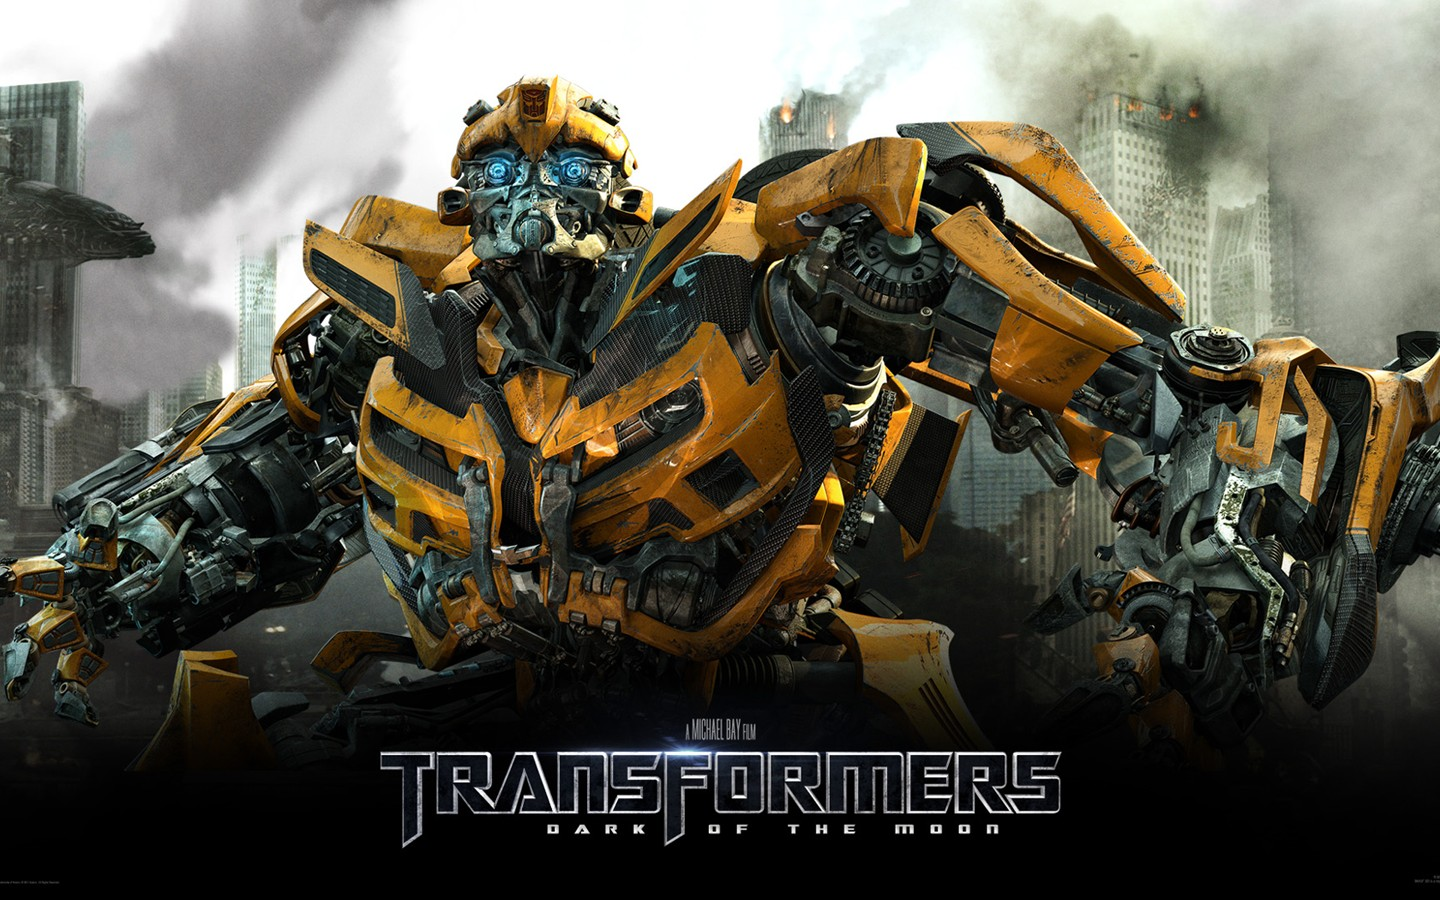 Transformers, when on the black 29696